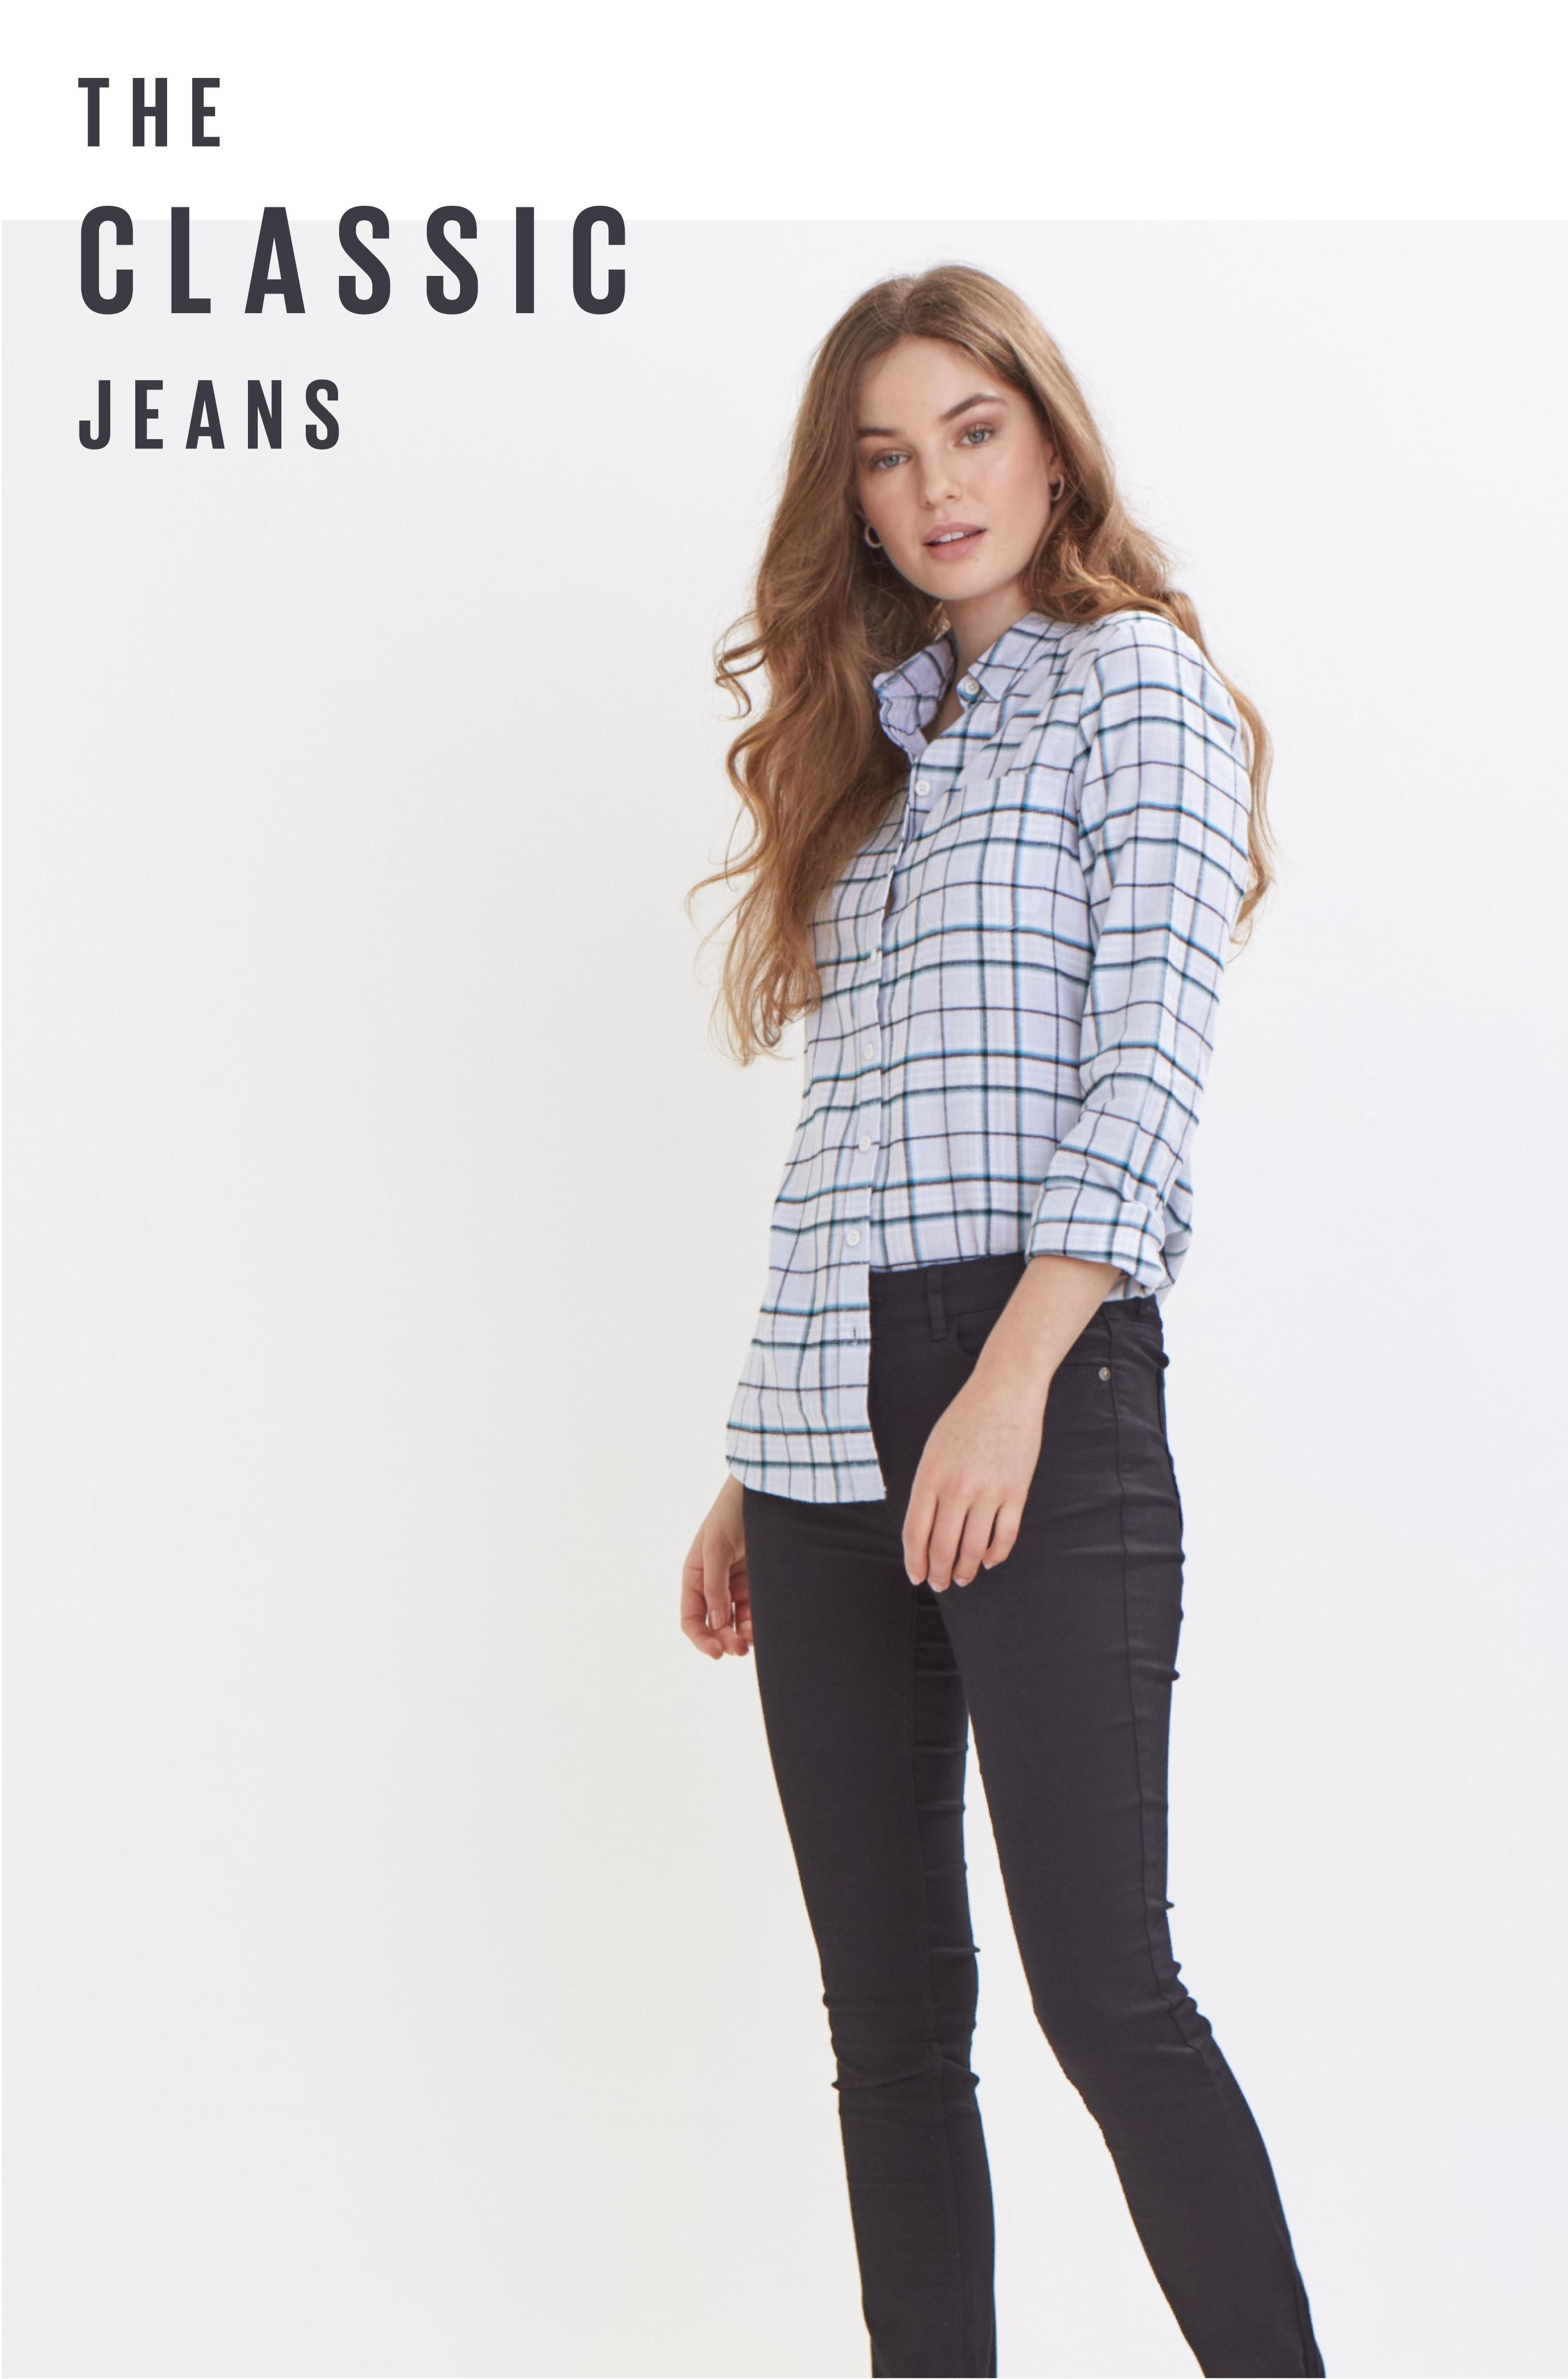 Female model wearing a light blue check shirt and black jeans.